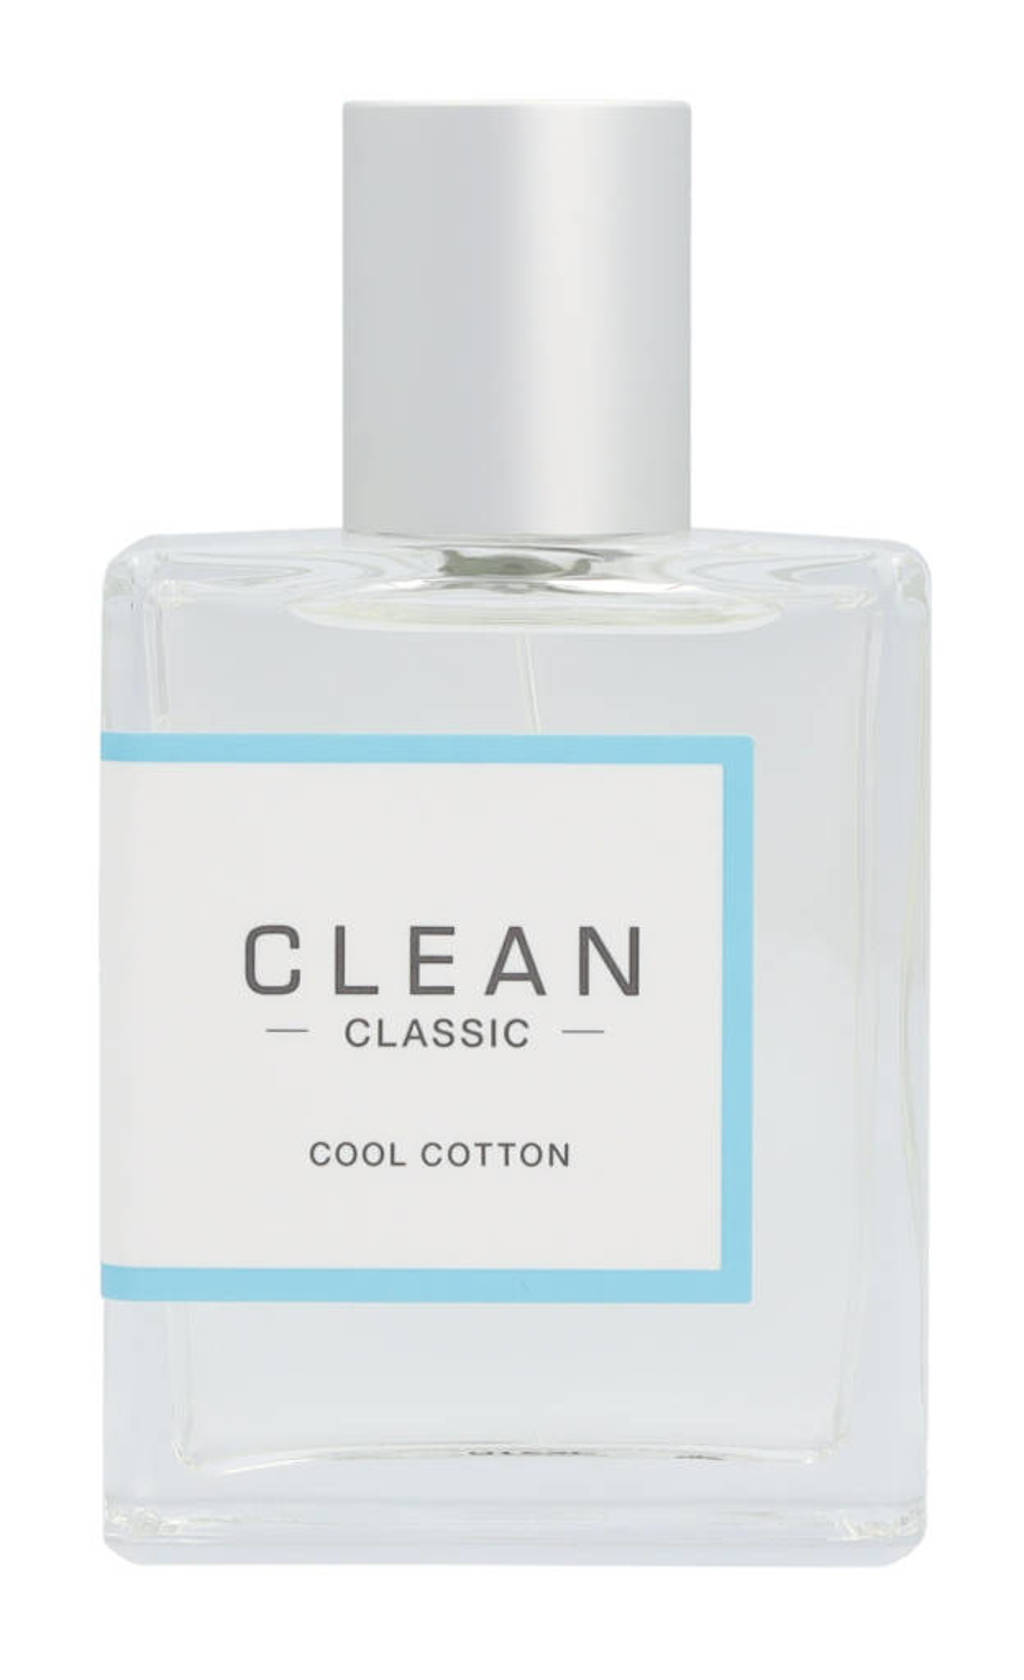 Clean Classic For Unisex eau de parfum - 60 ml